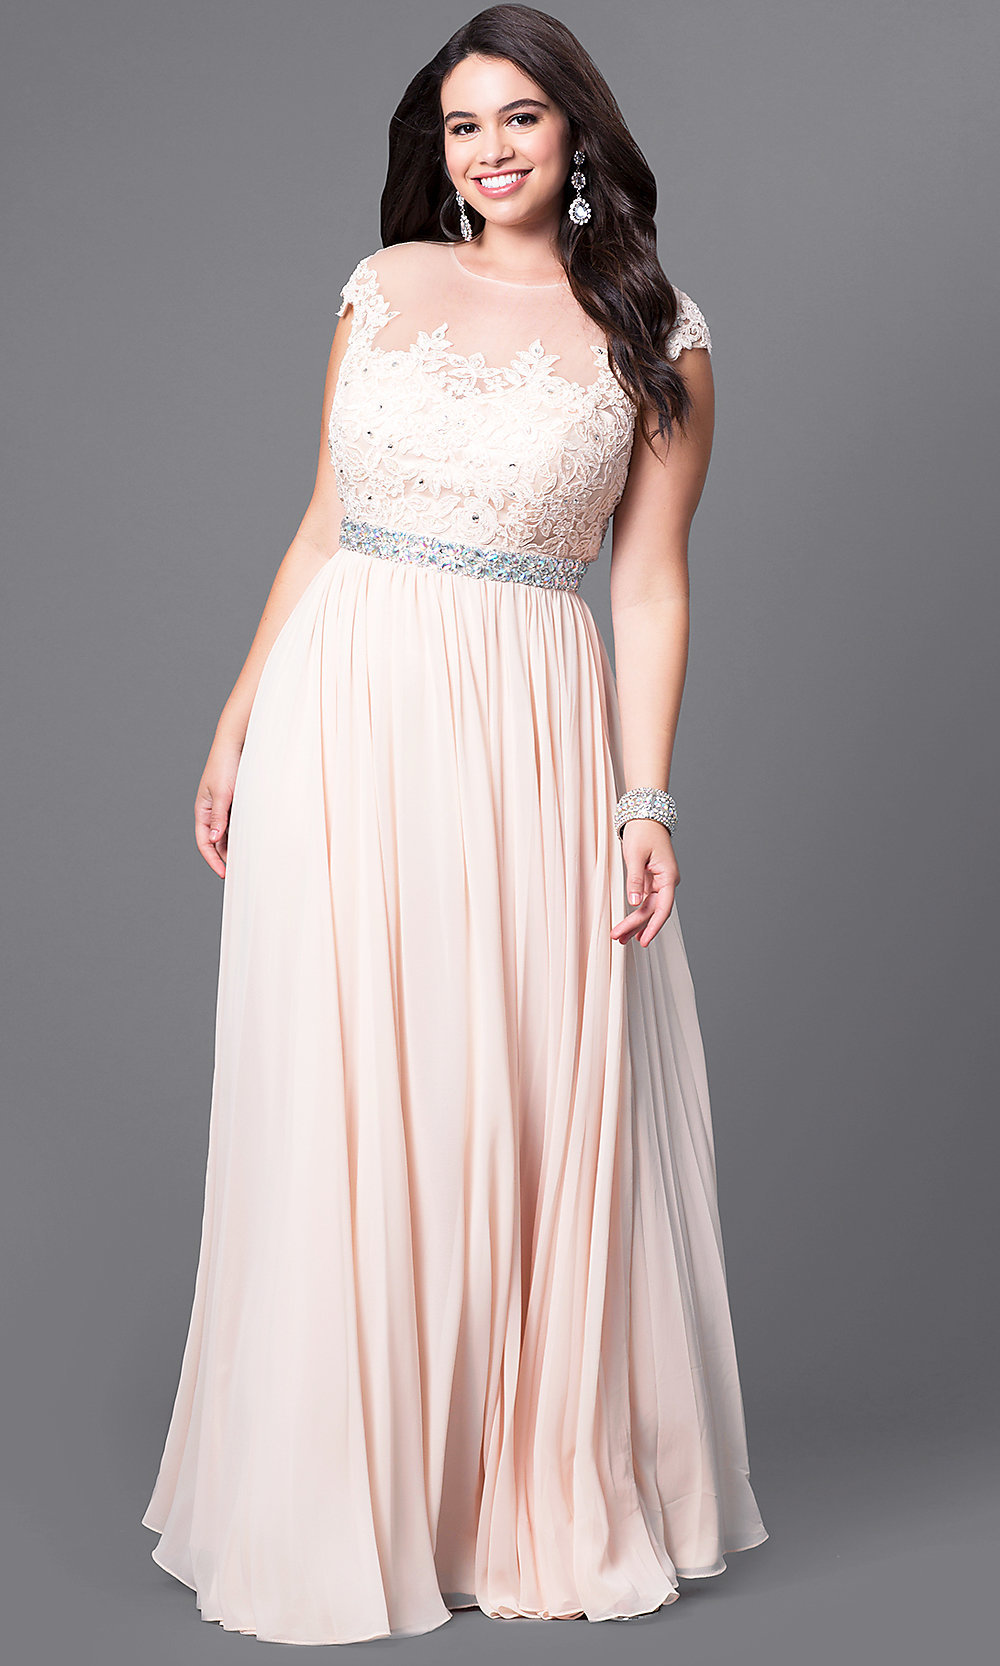 Plus-Size Prom and Party Dresses Between $100 and $200 -PromGirl